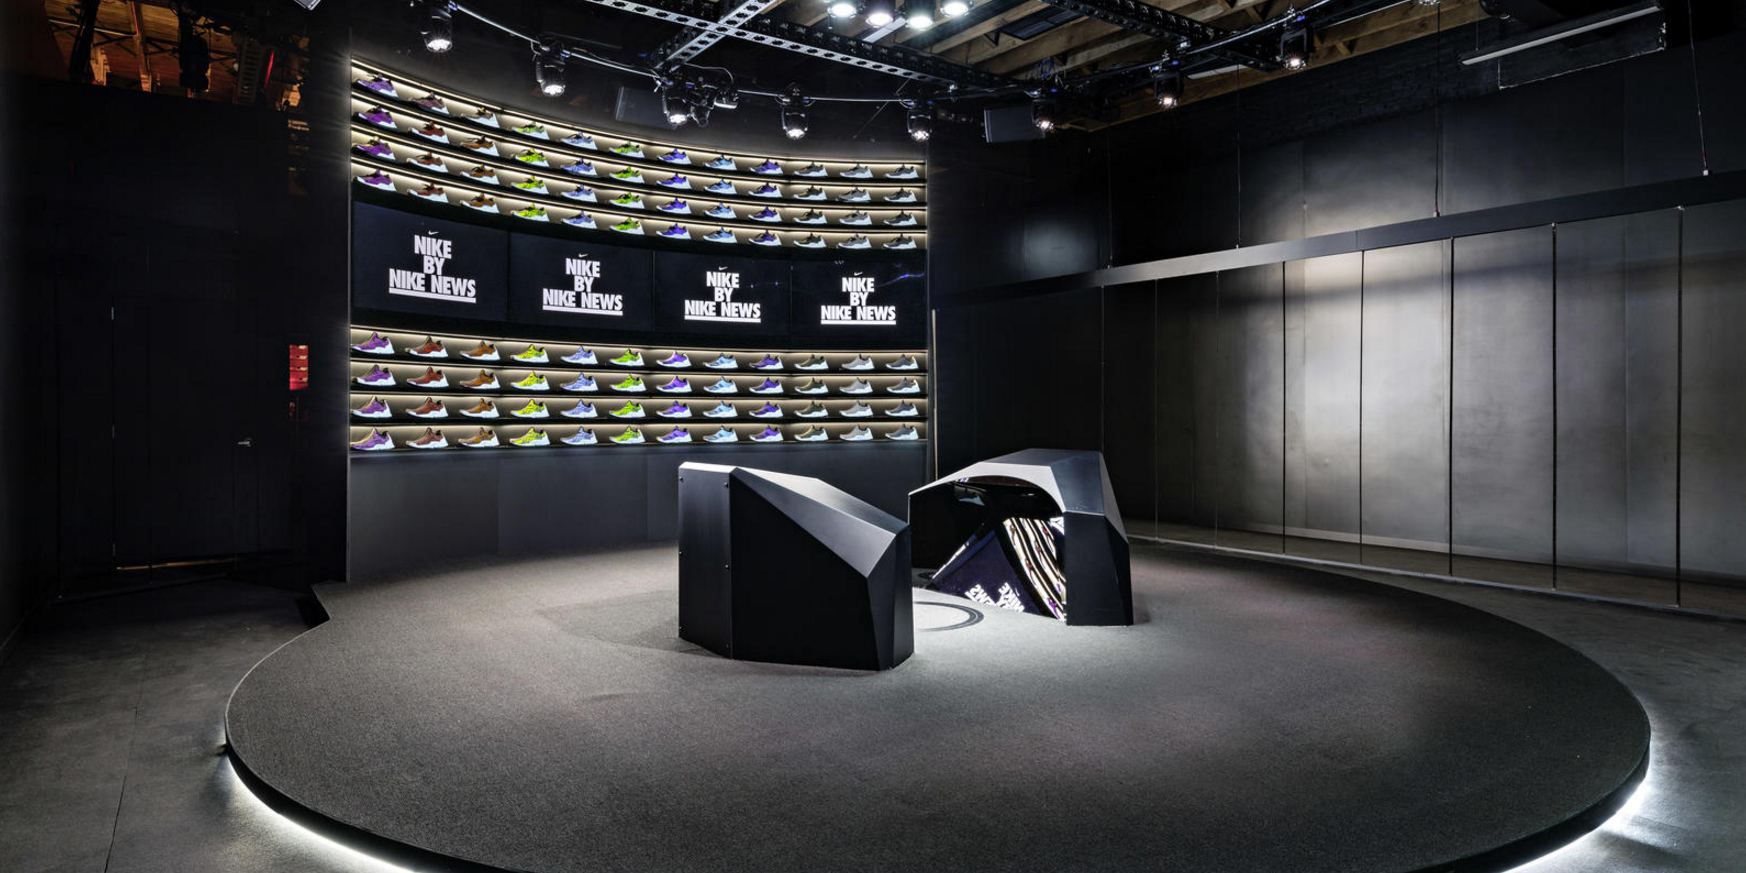 Mercado tribu material  Nike now builds custom shoes in under 90 minutes at its Makers' Studio in  NYC - 9to5Toys